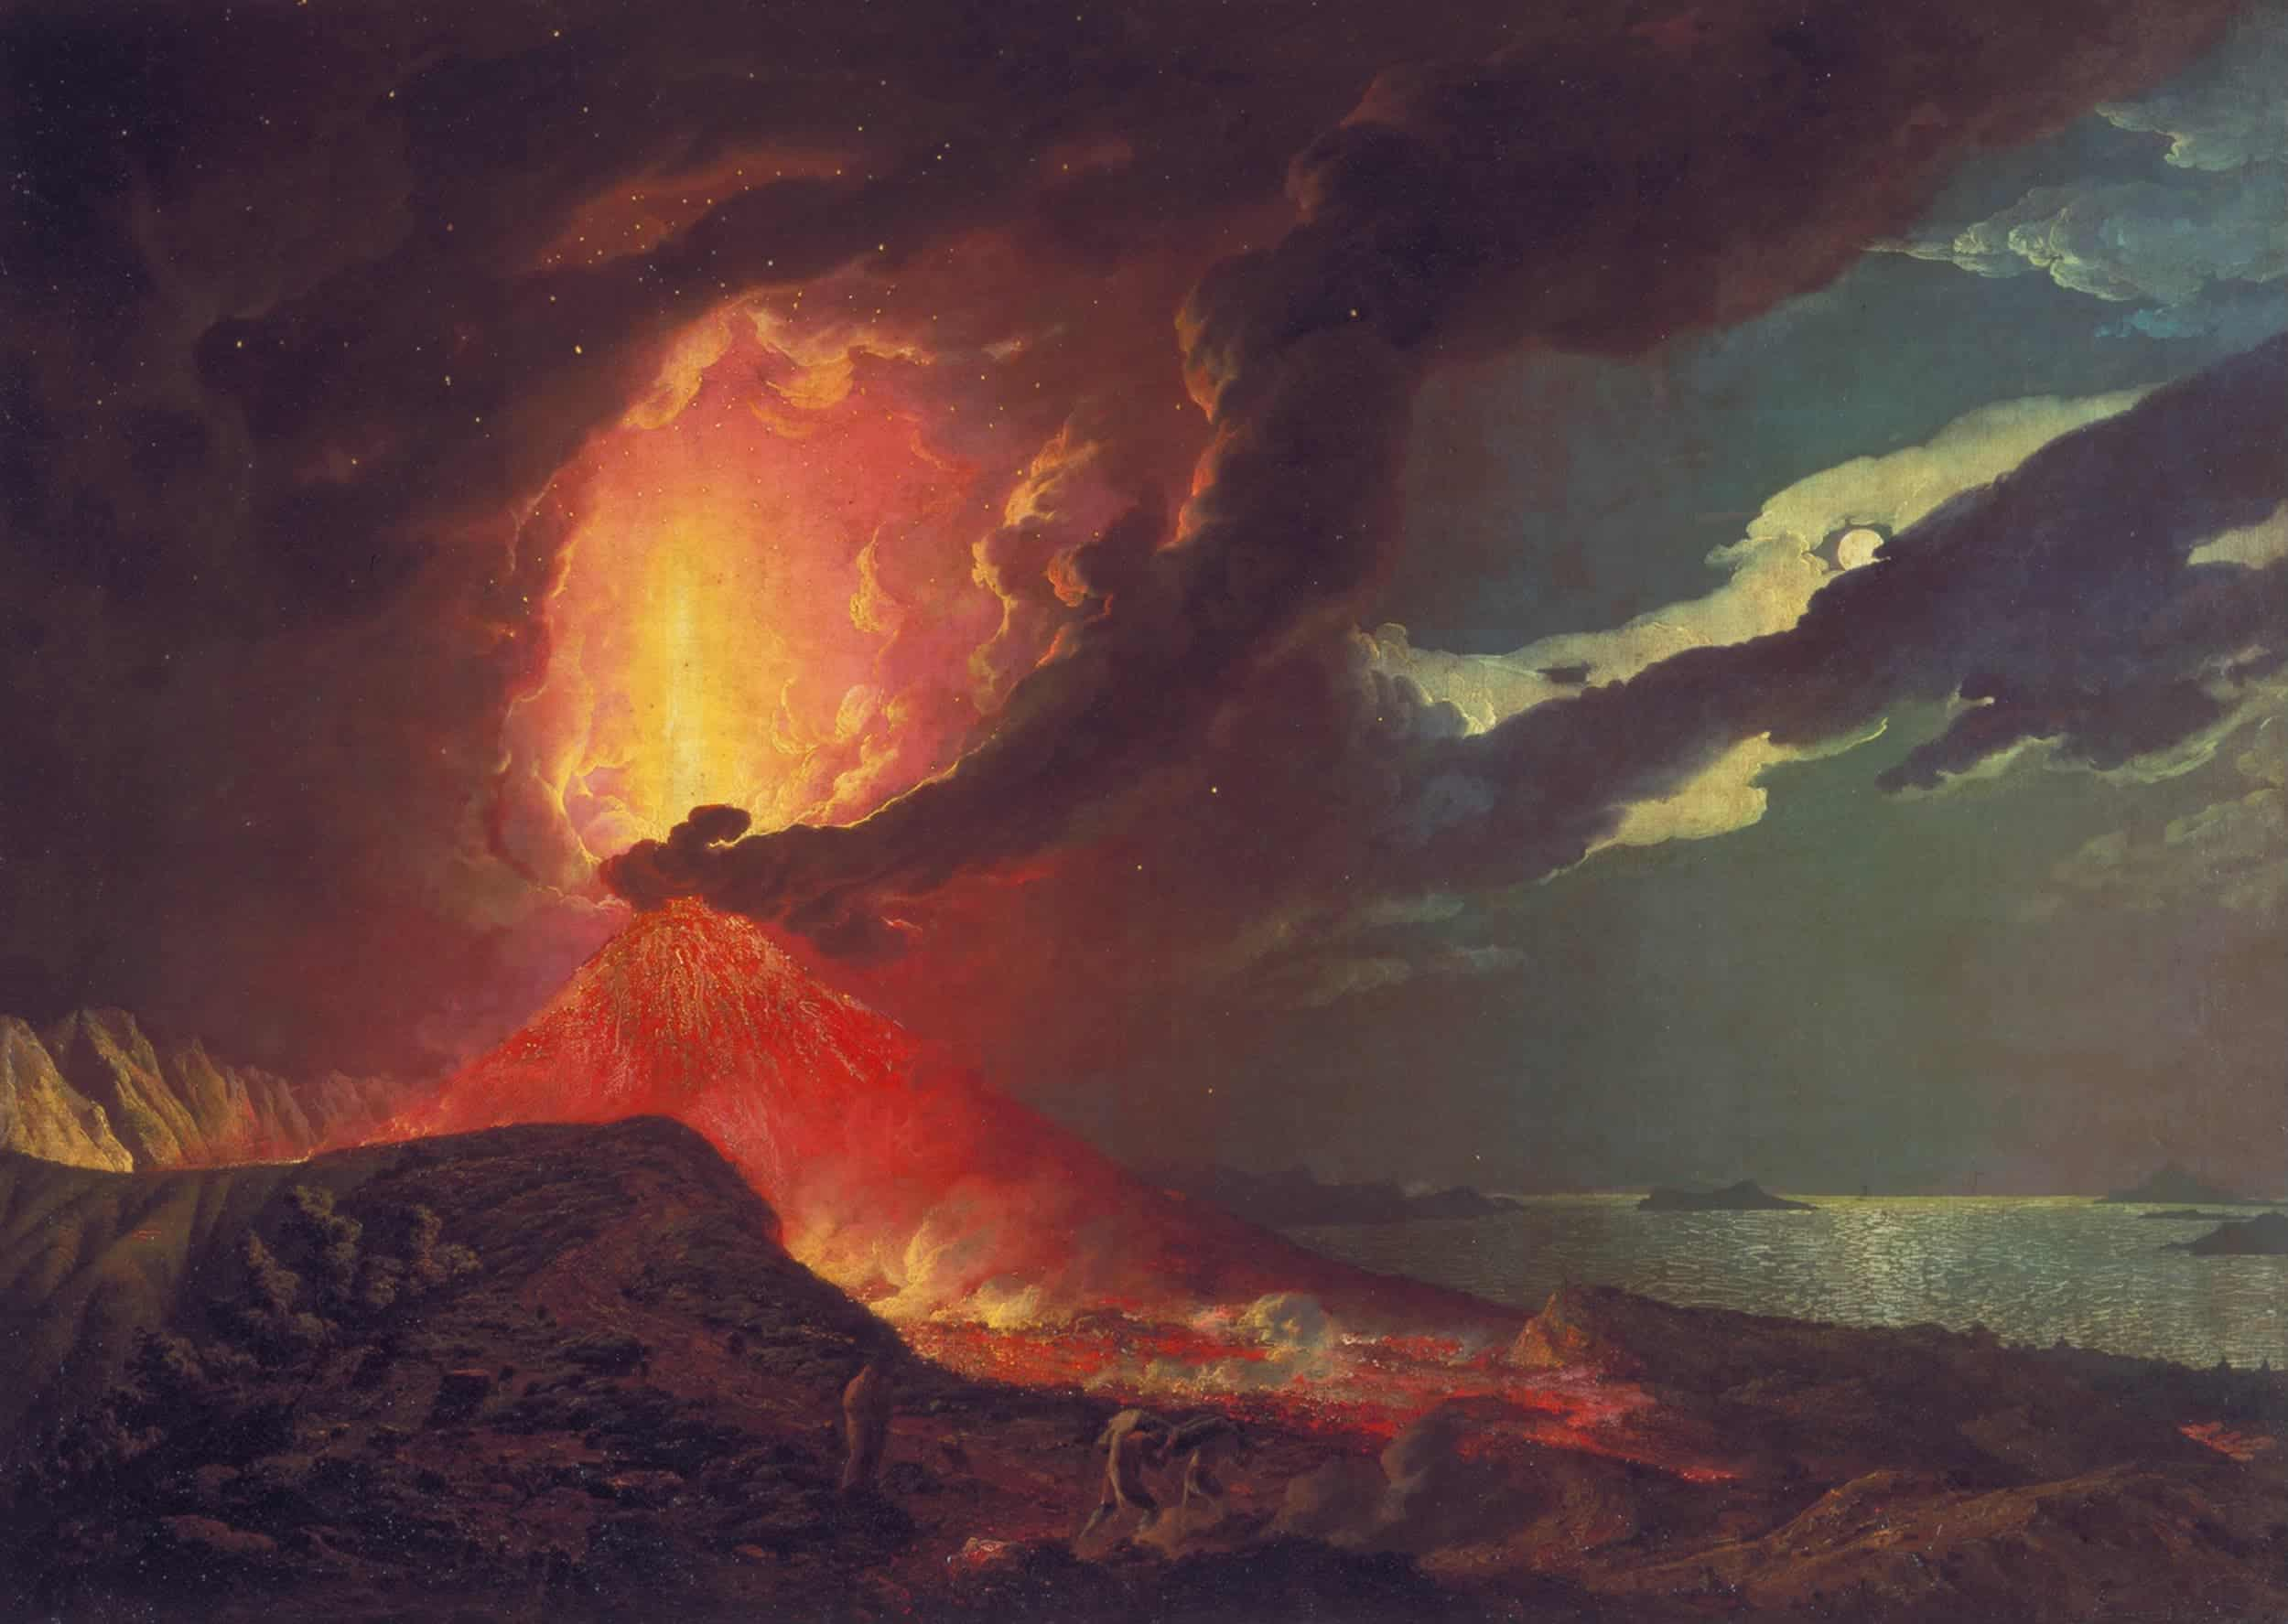 Joseph_Wright_of_Derby_-_Vesuvius_in_Eruption2C_with_a_View_over_the_Islands_in_the_Bay_of_Naples_-_Google_Art_Project.jpg